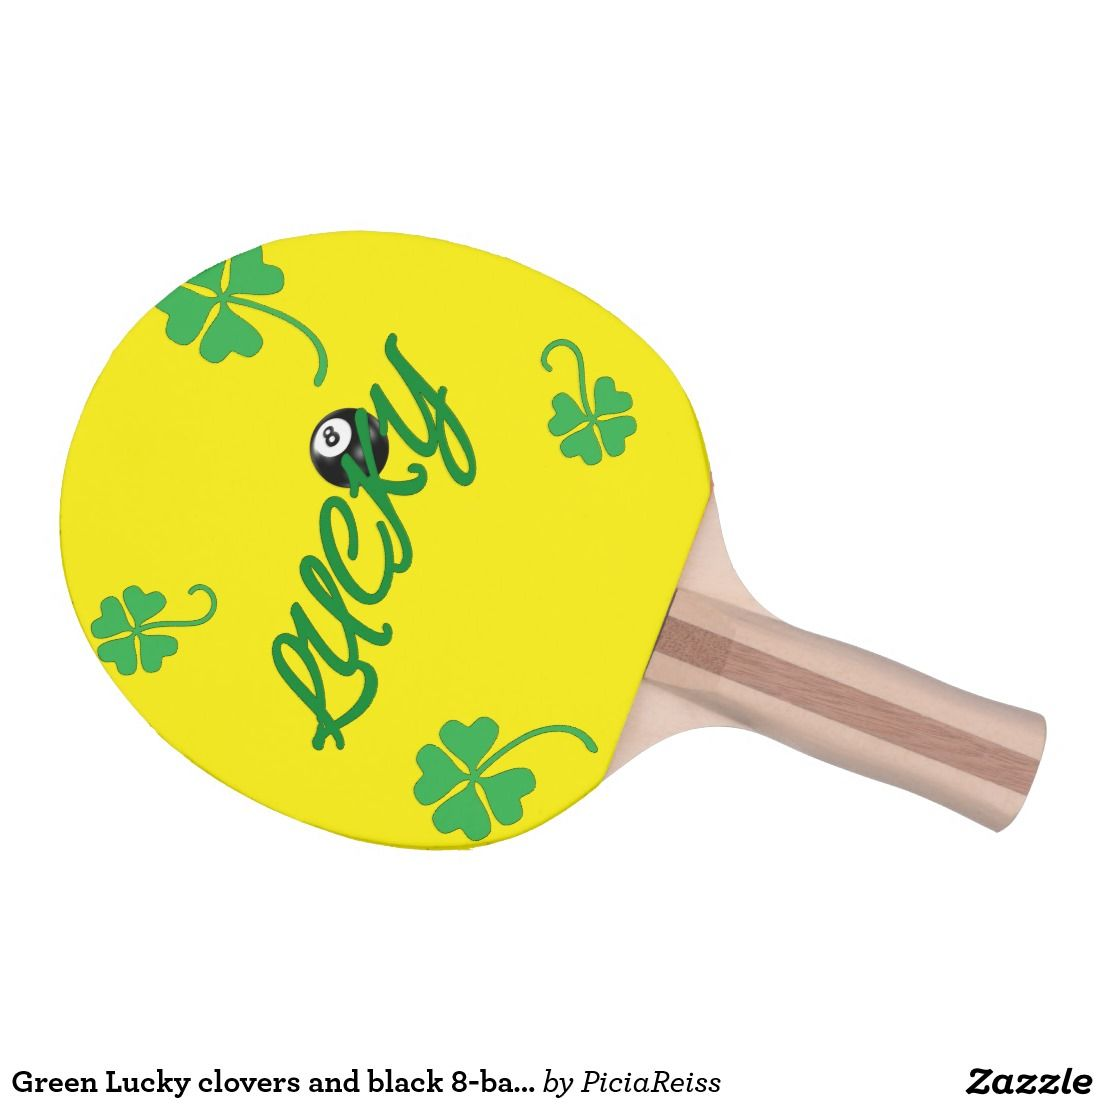 Green Lucky clovers and black 8-ball cool design Ping Pong Paddle